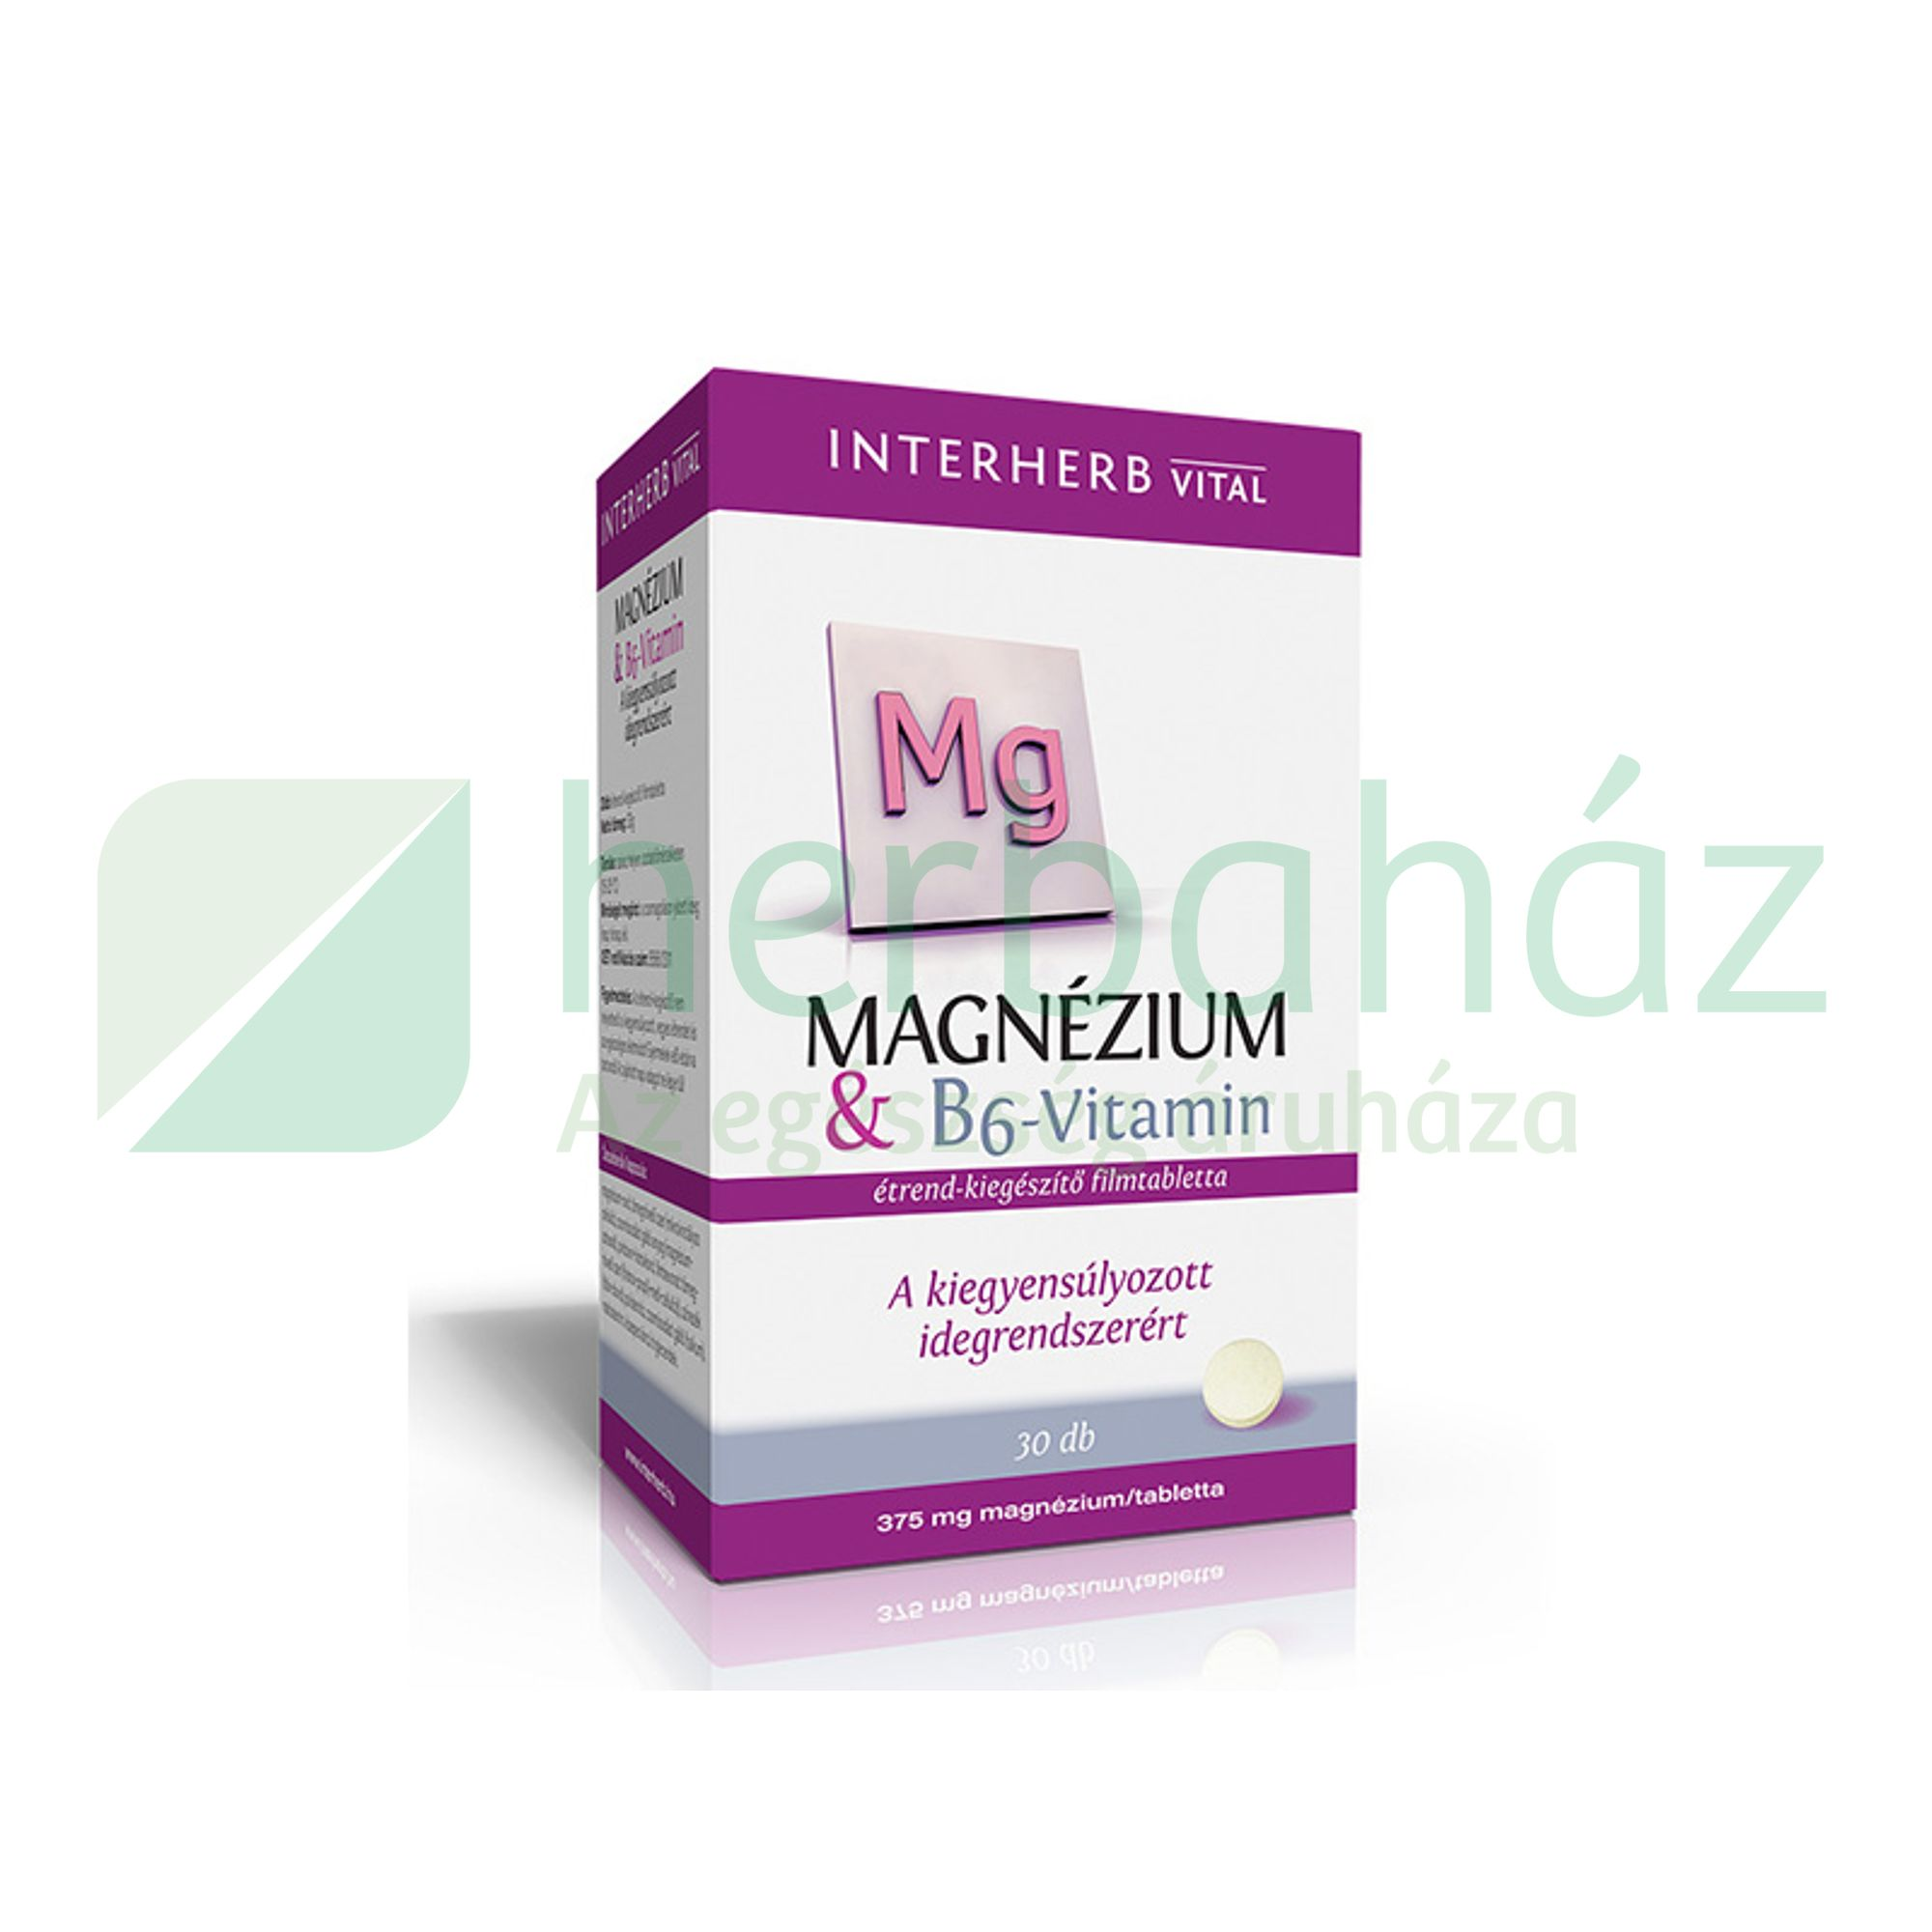 INTERHERB MAGNÉZIUM + B6 -VITAMIN TABLETTA 30DB